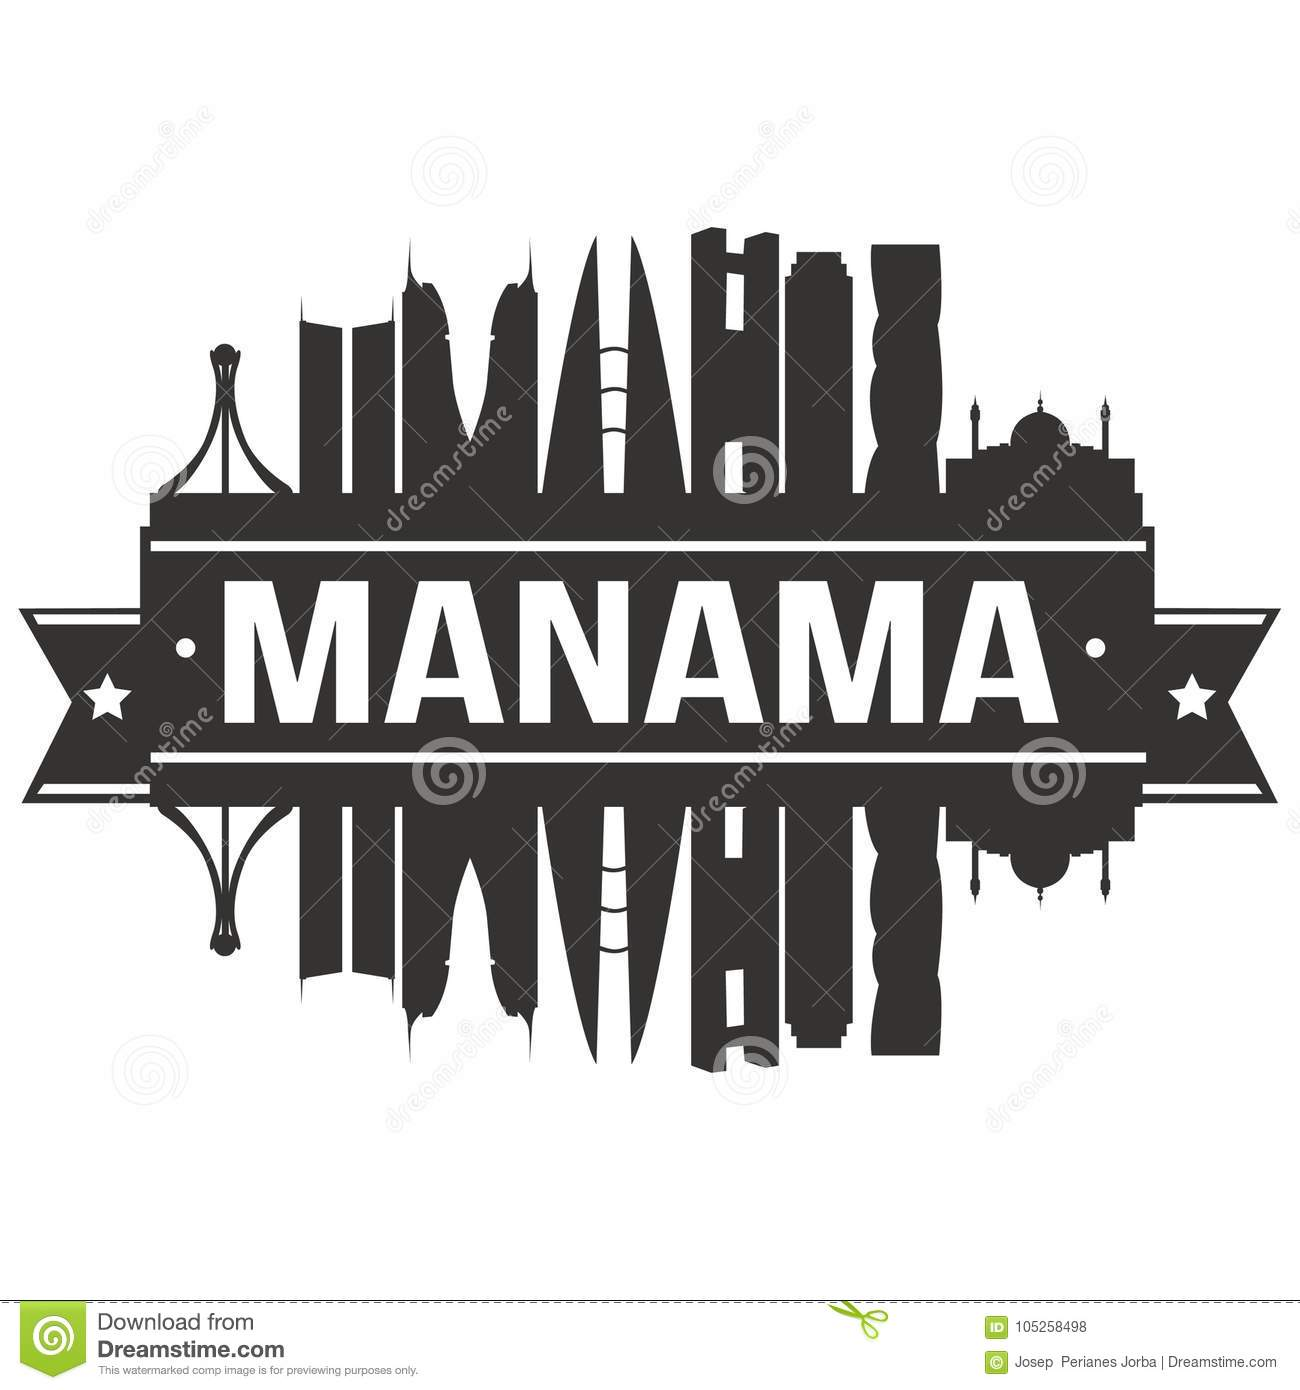 9d411775f0c2 Manama Bahrain Asia Icon Vector Art Design Skyline Flat City ...